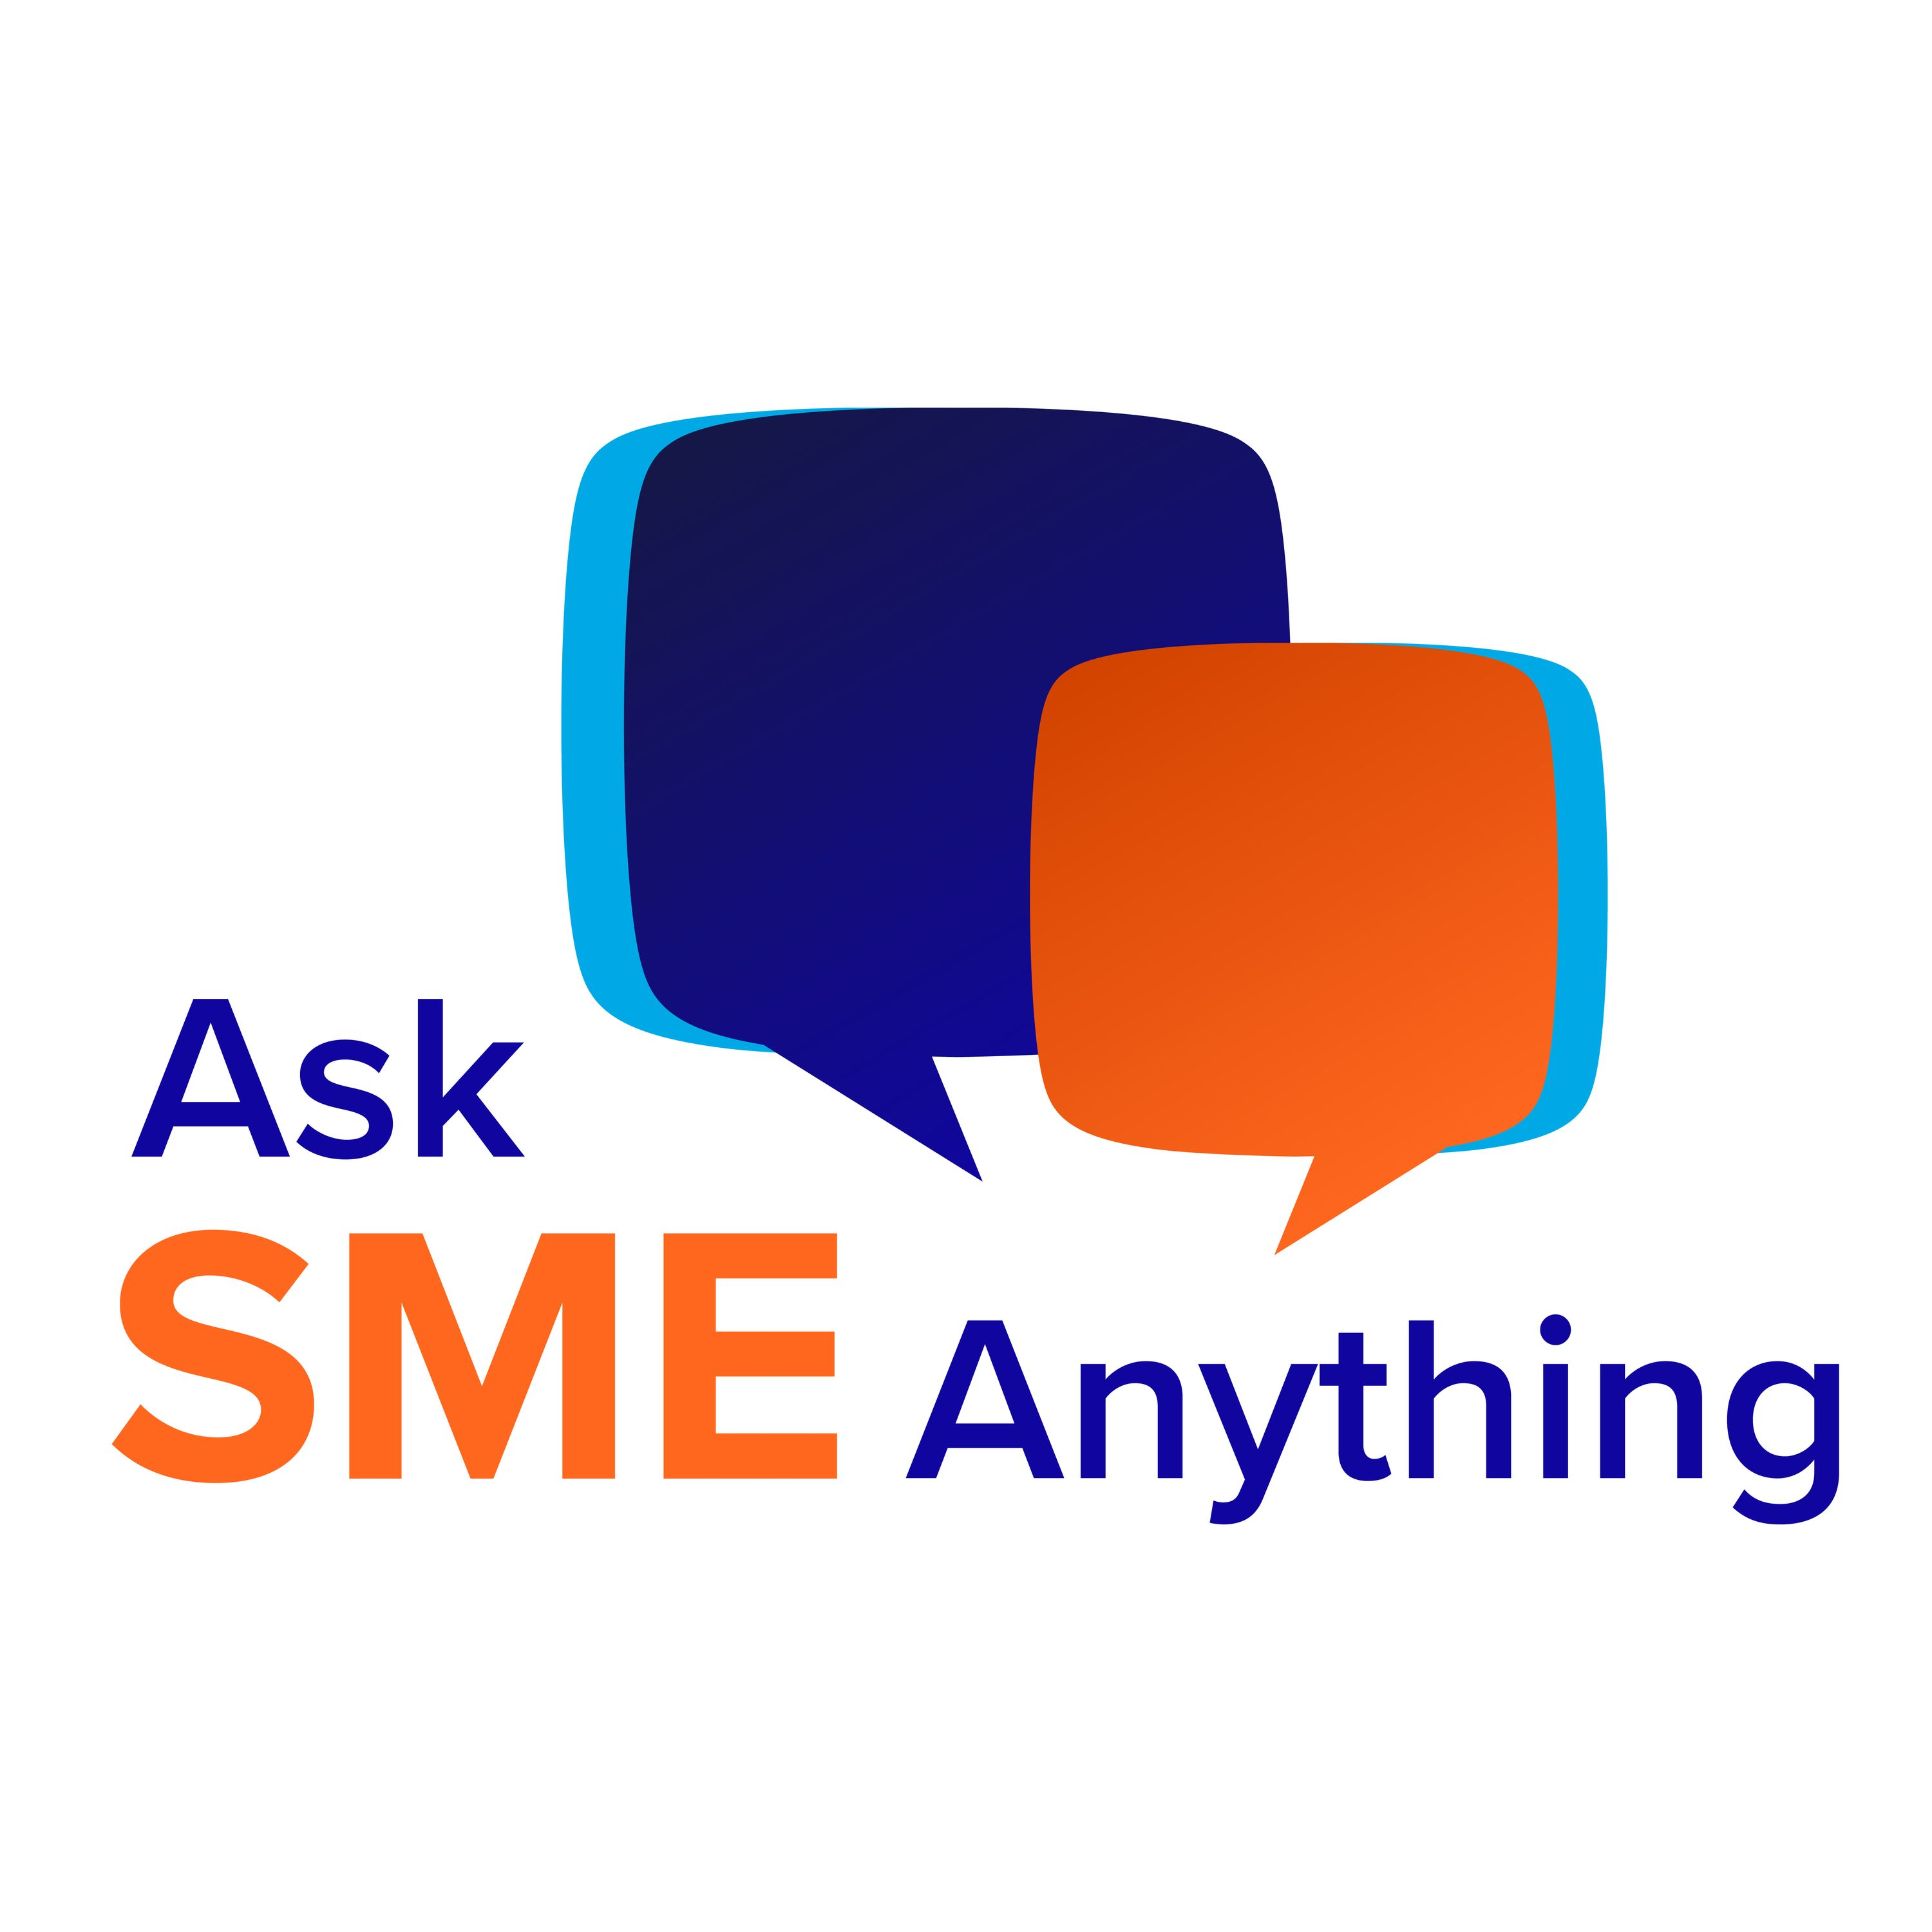 Ask SME Anything